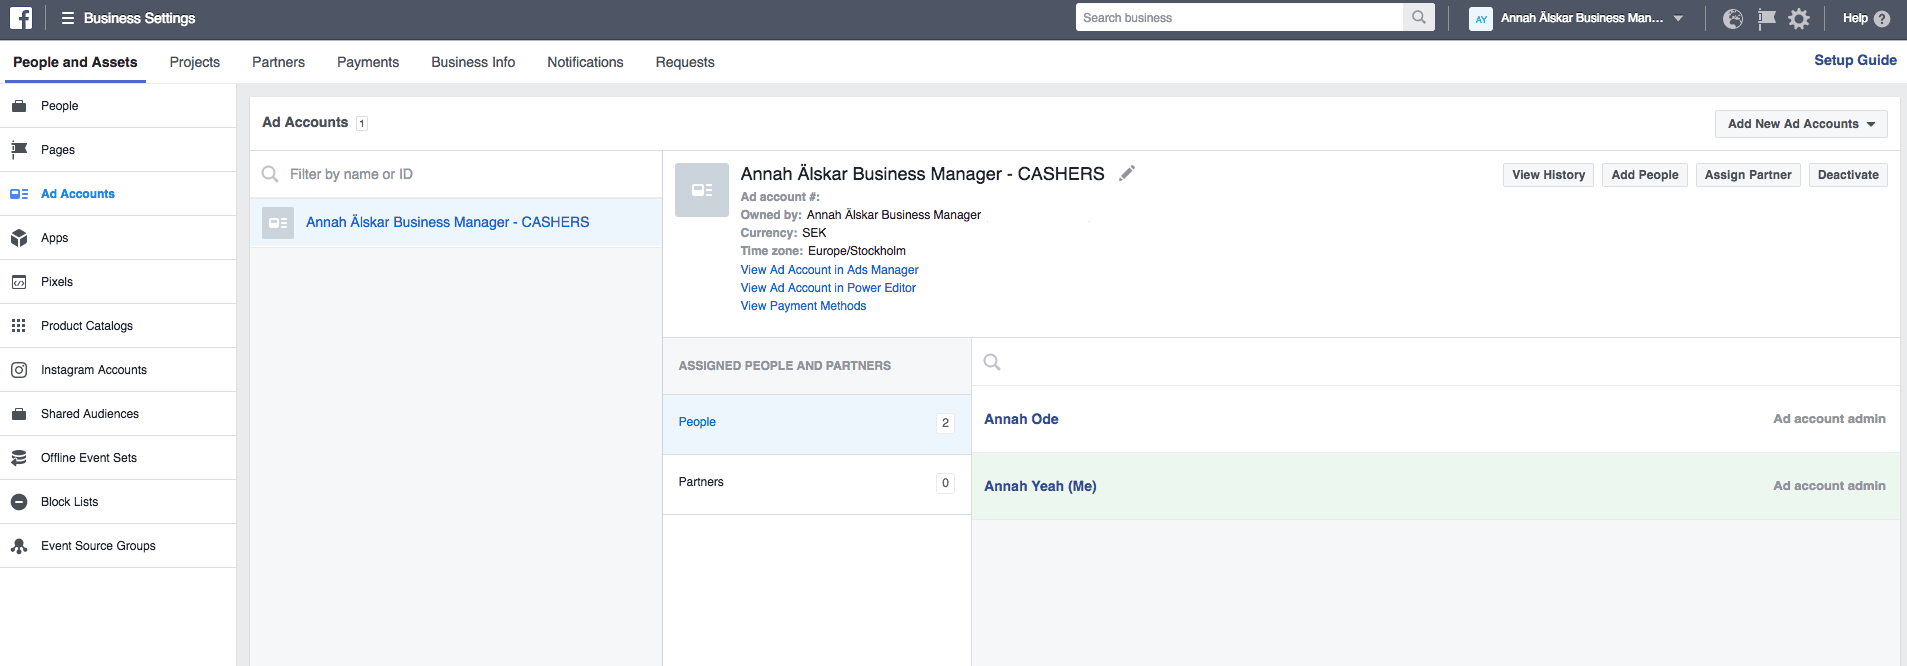 added at ad account facebook business manager